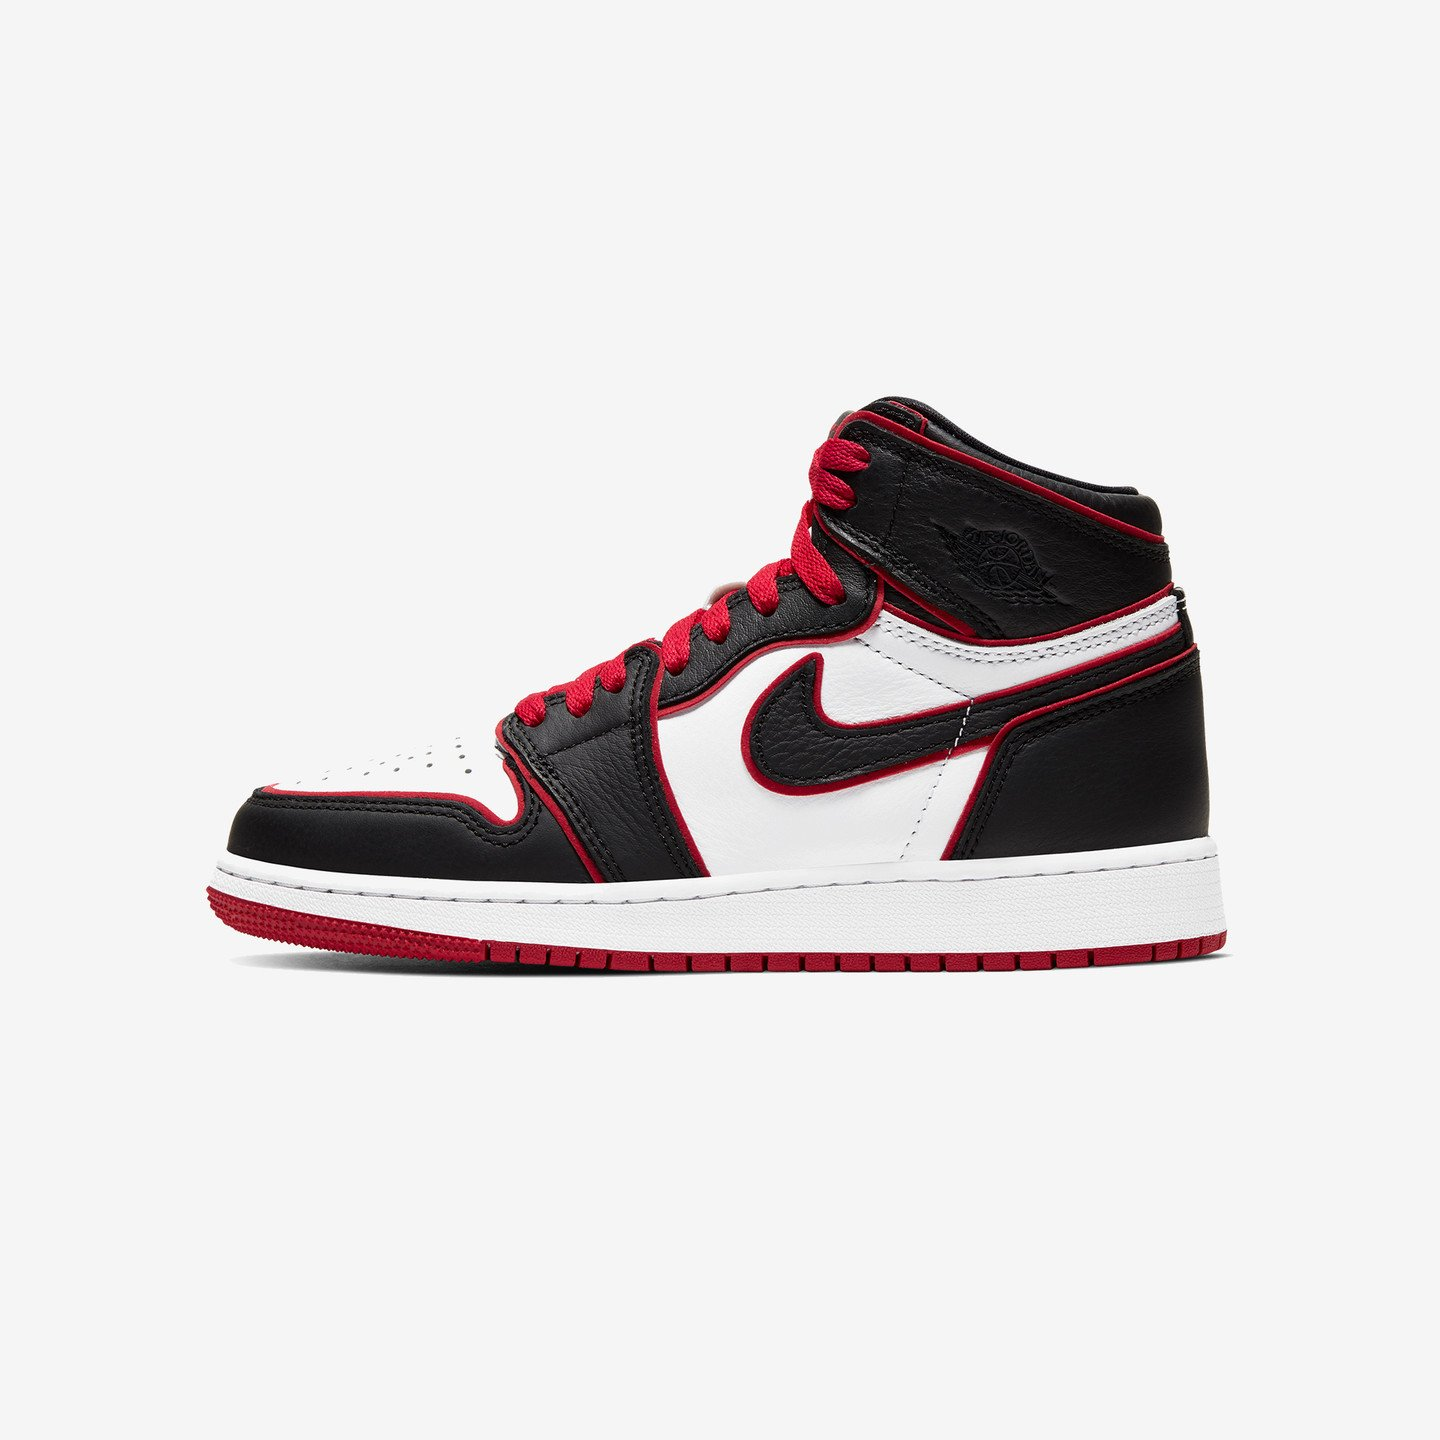 Jordan Air Jordan 1 Retro High OG GS 'Bloodline' Black / Gym Red / White 575441-062